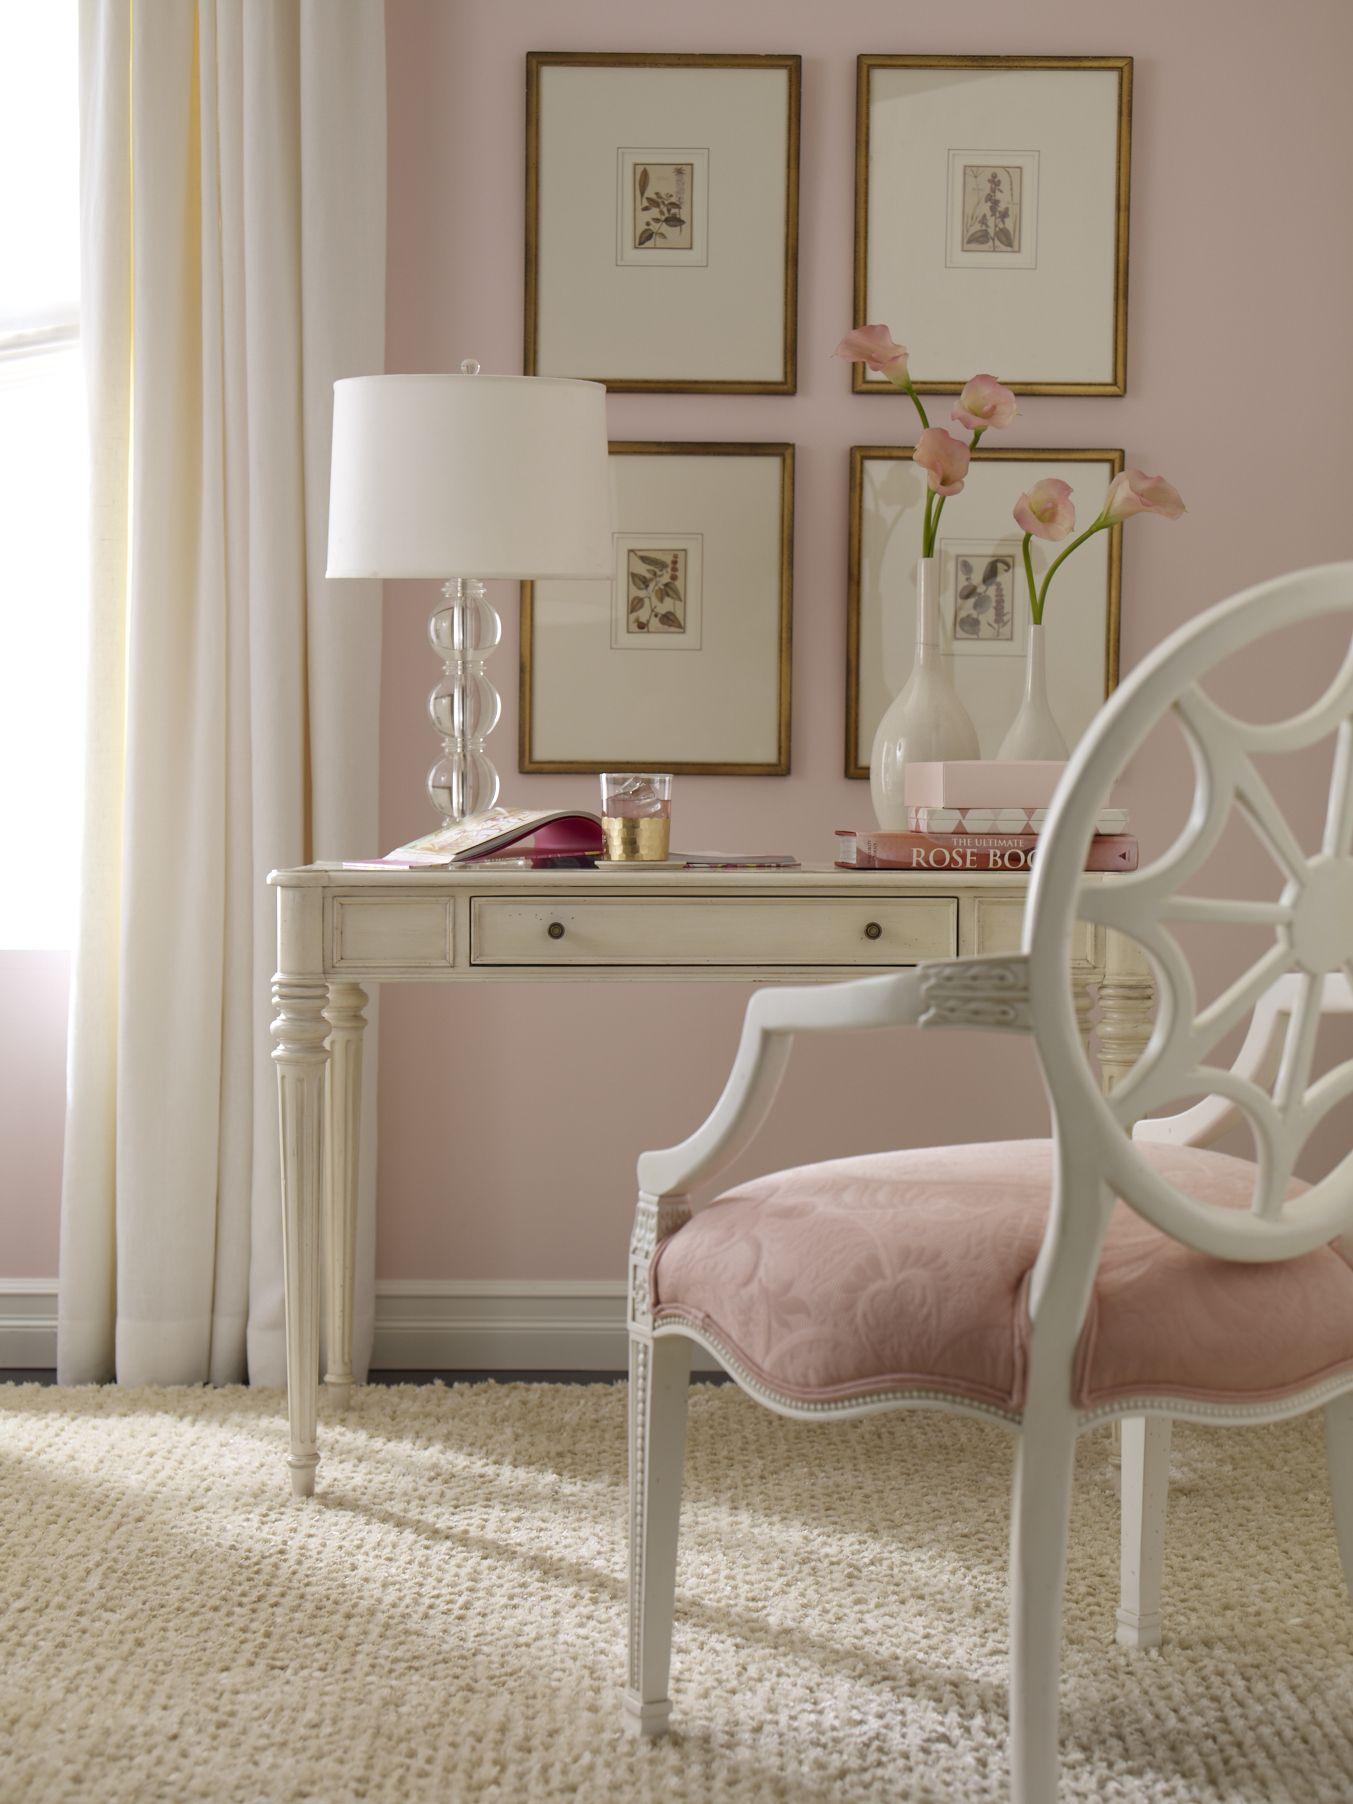 Dusty Pink Bedroom Sweet And Chic Desk On The Hunt To Find One Home Sweet